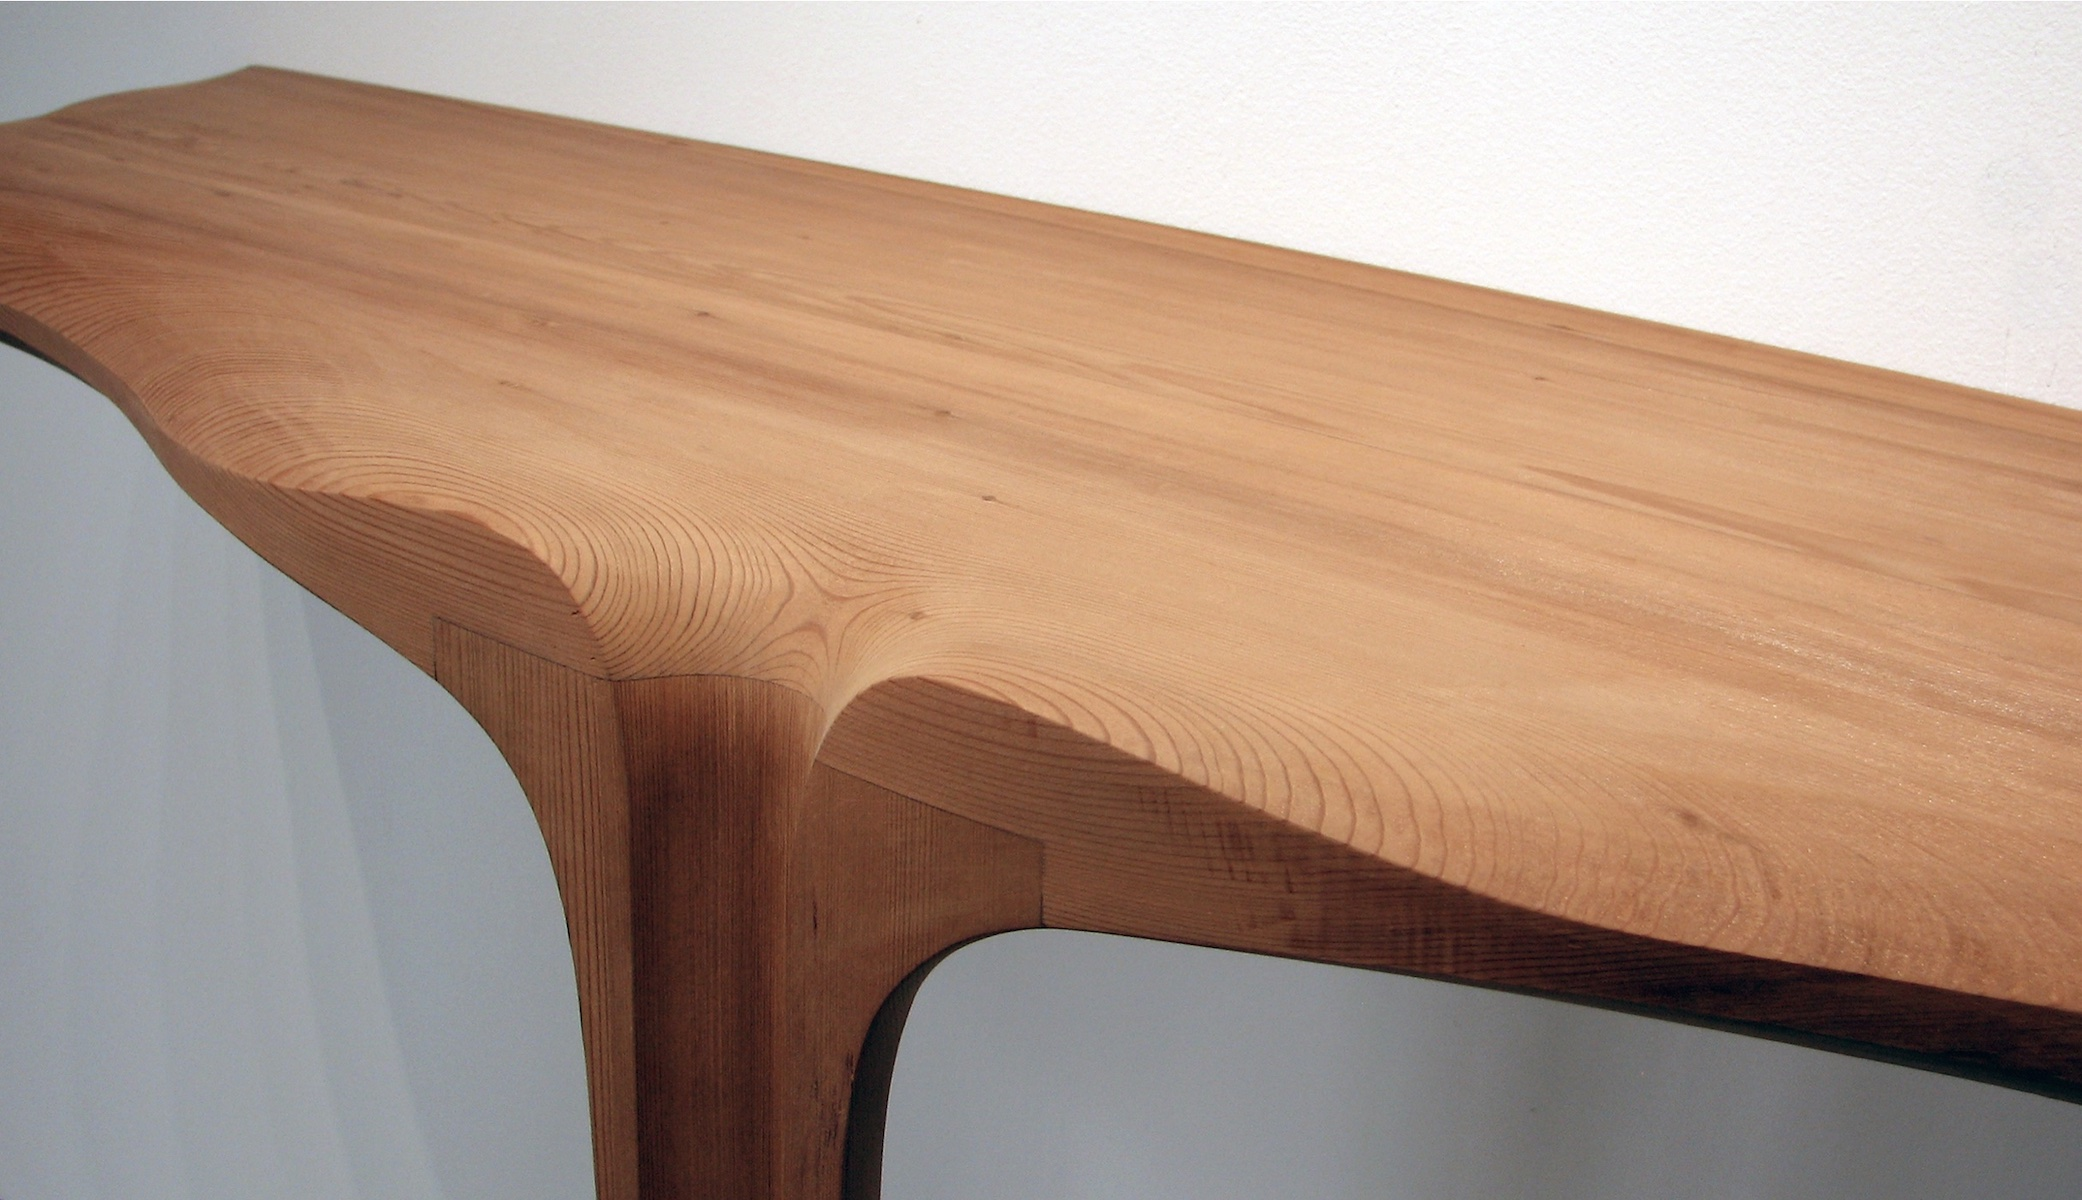 detail of the Gingko Console by artist Christopher Kurtz